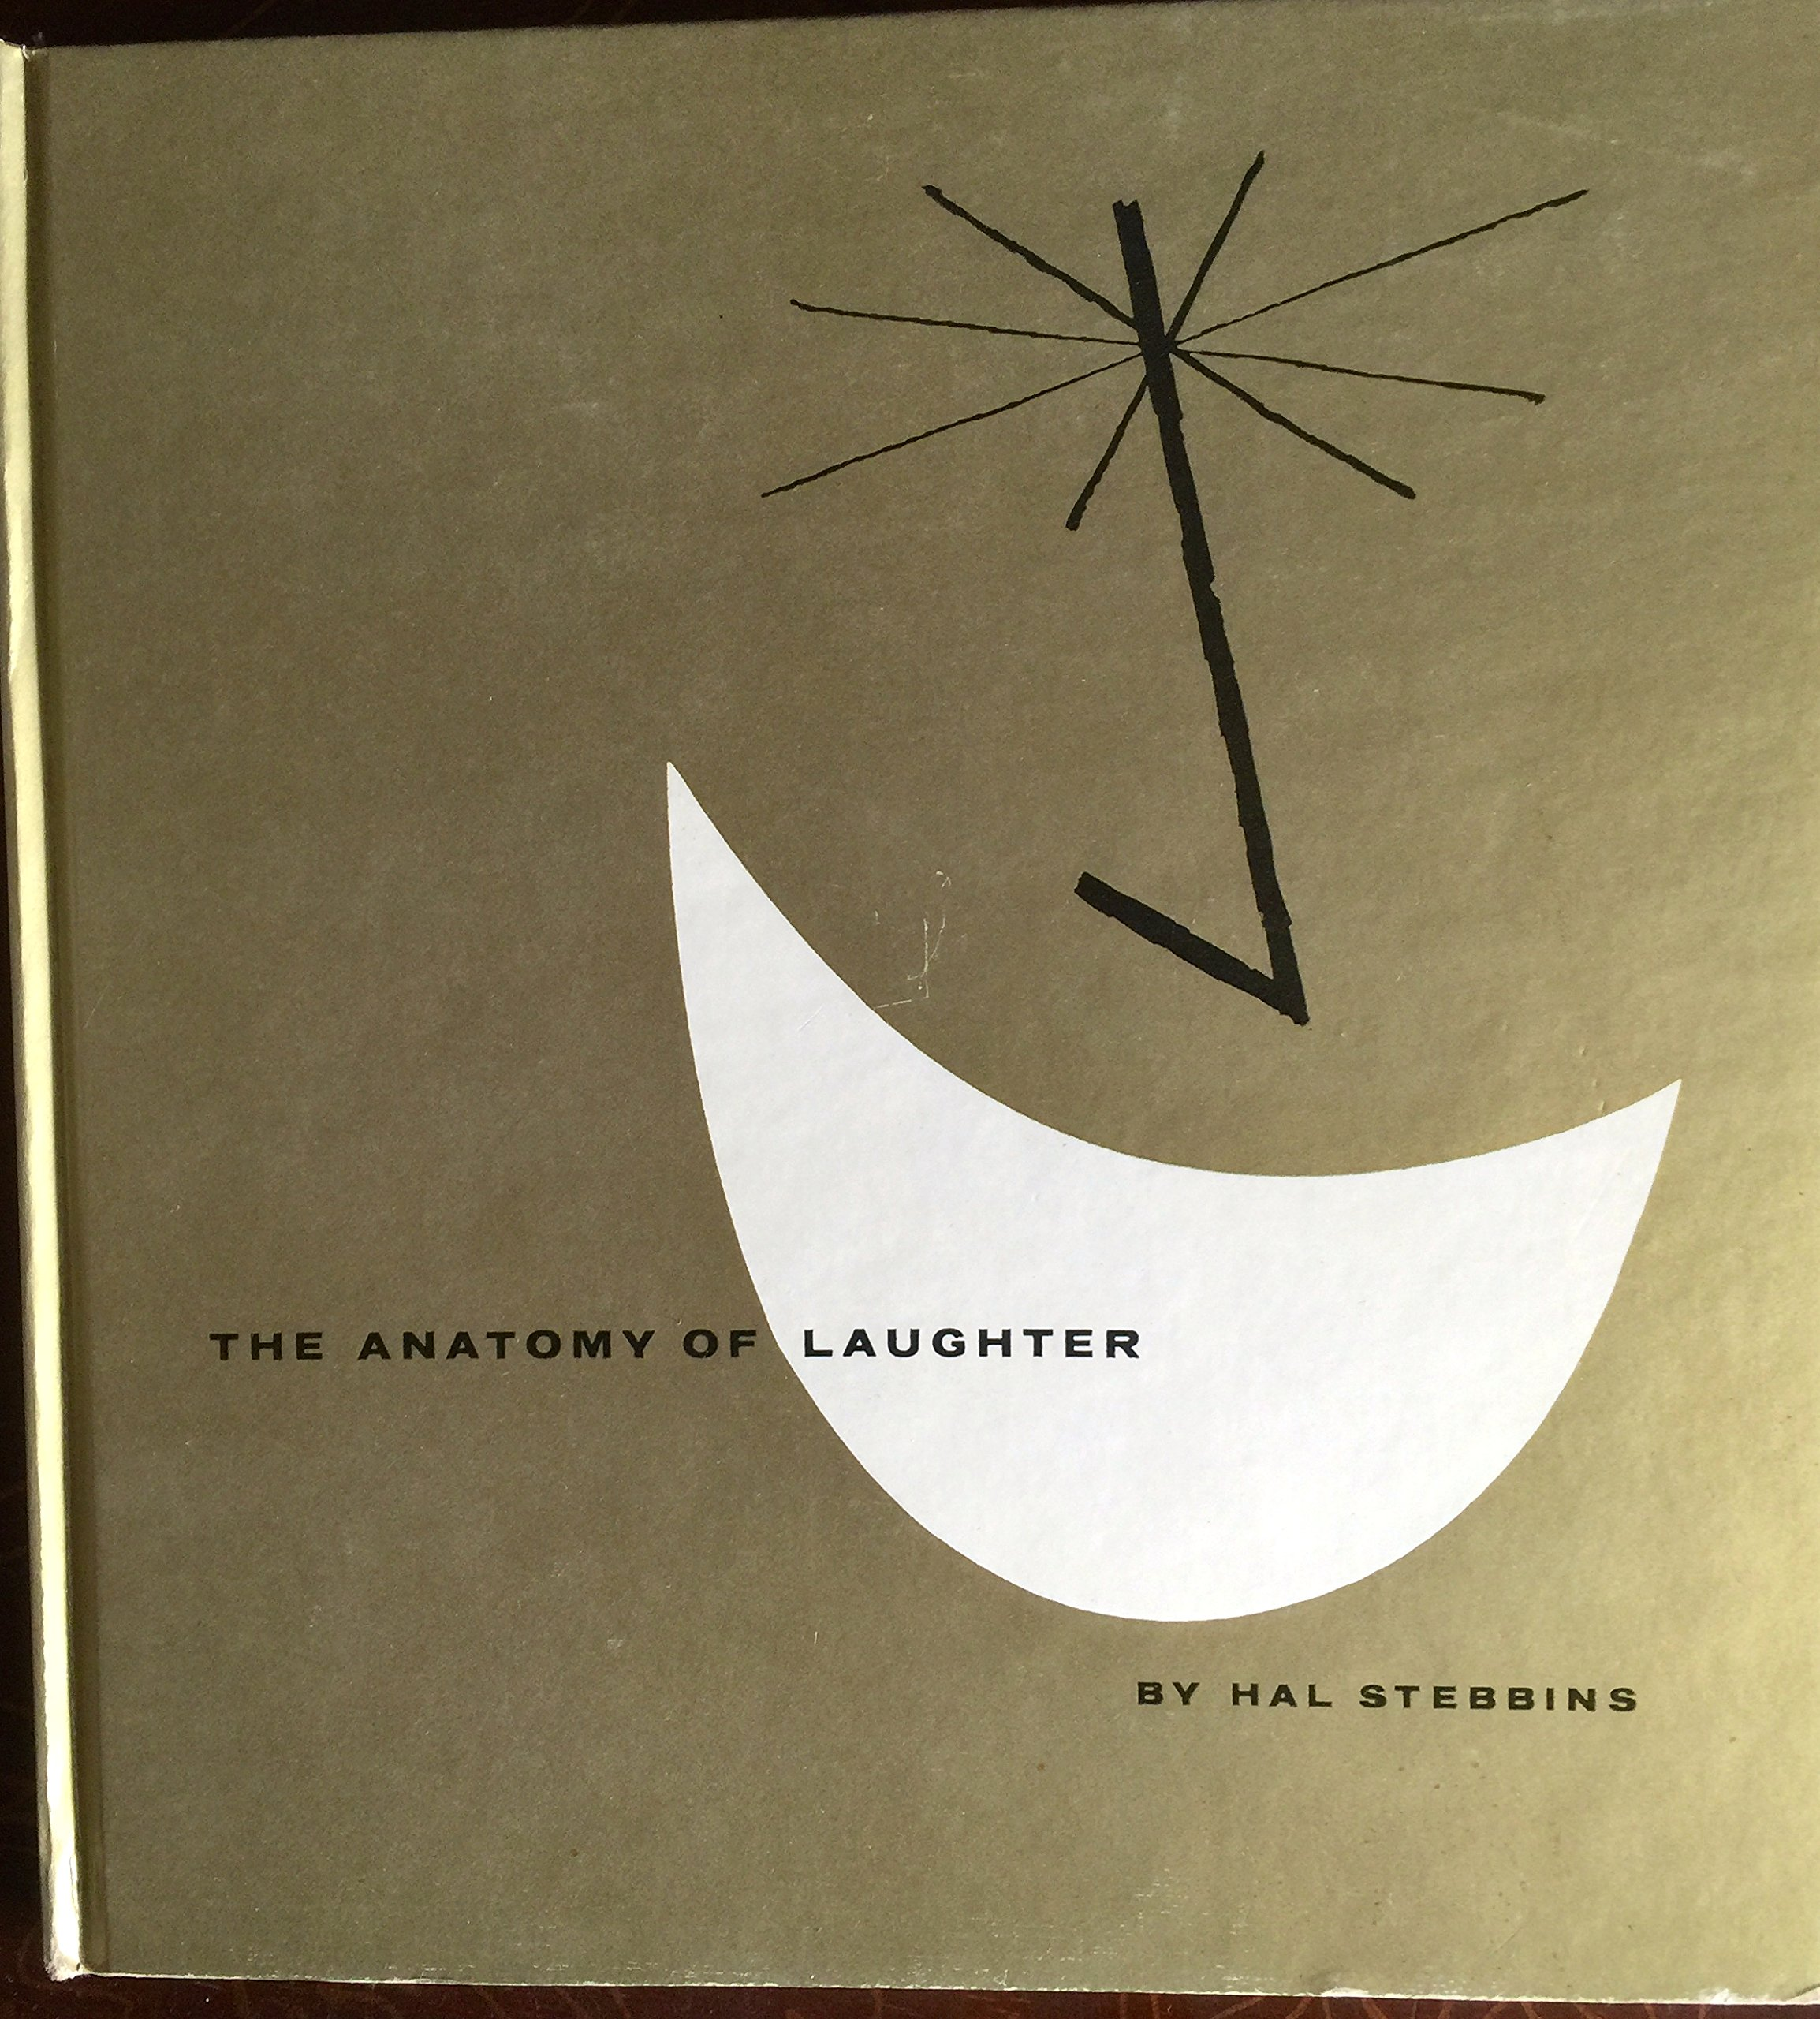 The anatomy of laughter: Harry A Stebbins: Amazon.com: Books